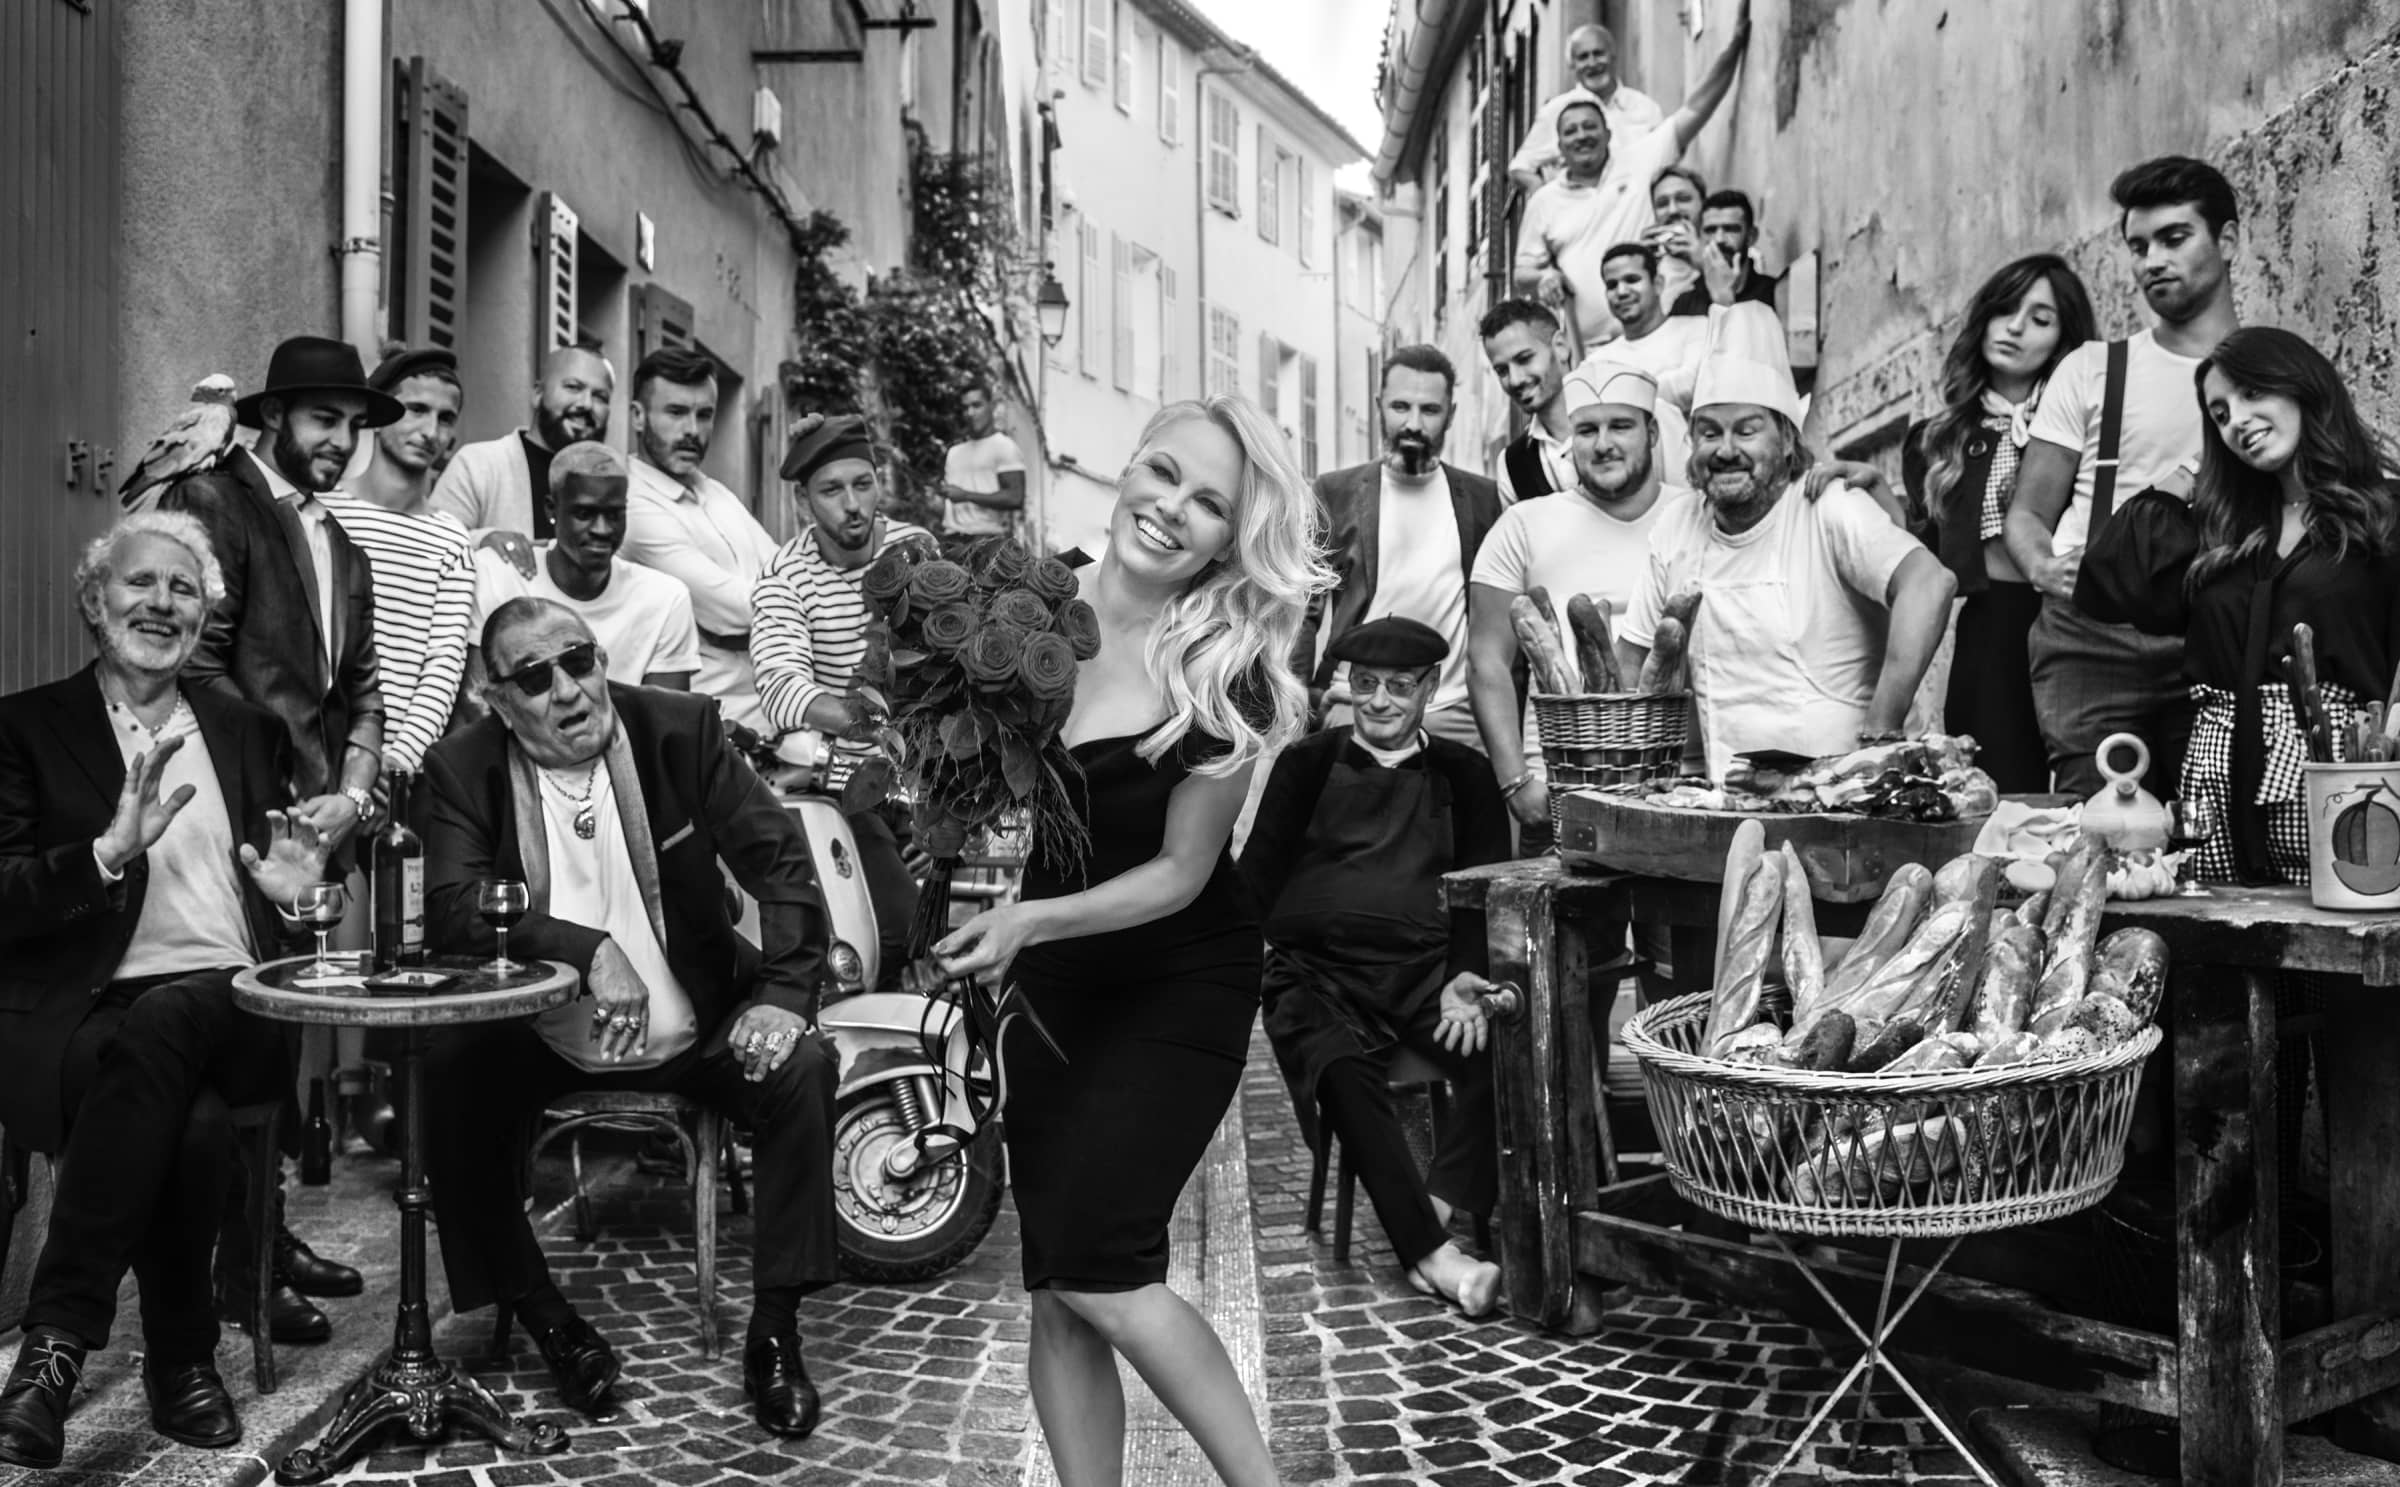 David Yarrow features Pamela Anderson in new charity artwork, Fine art photographer and animal activist David Yarrow recently photographed the...